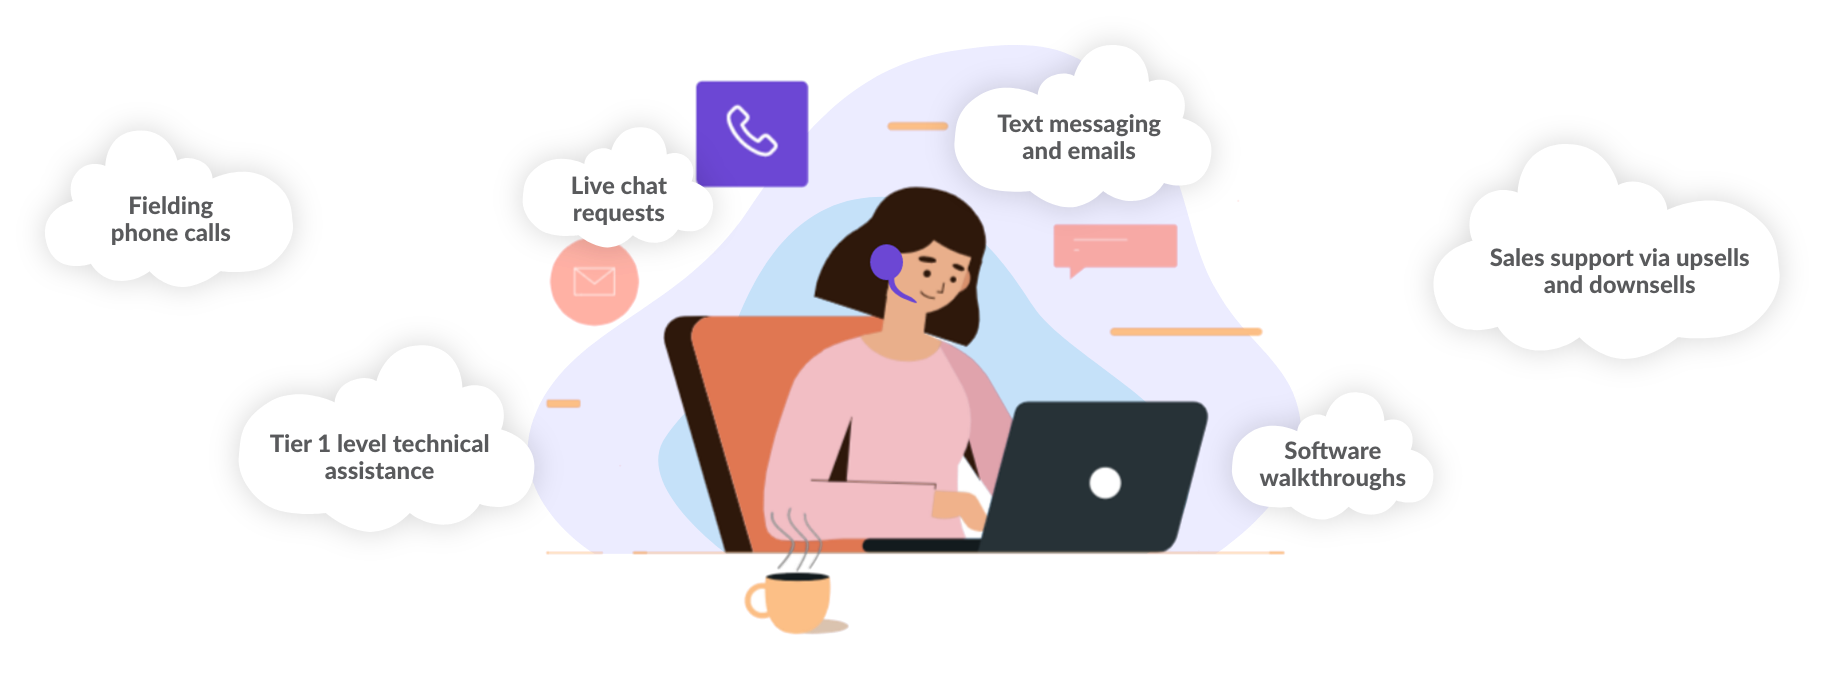 Girl at laptop working with fielding phone calls, tier 1 level techincal assistance, live chat requests, text messaging and emails, software walkthroughs and sales support.